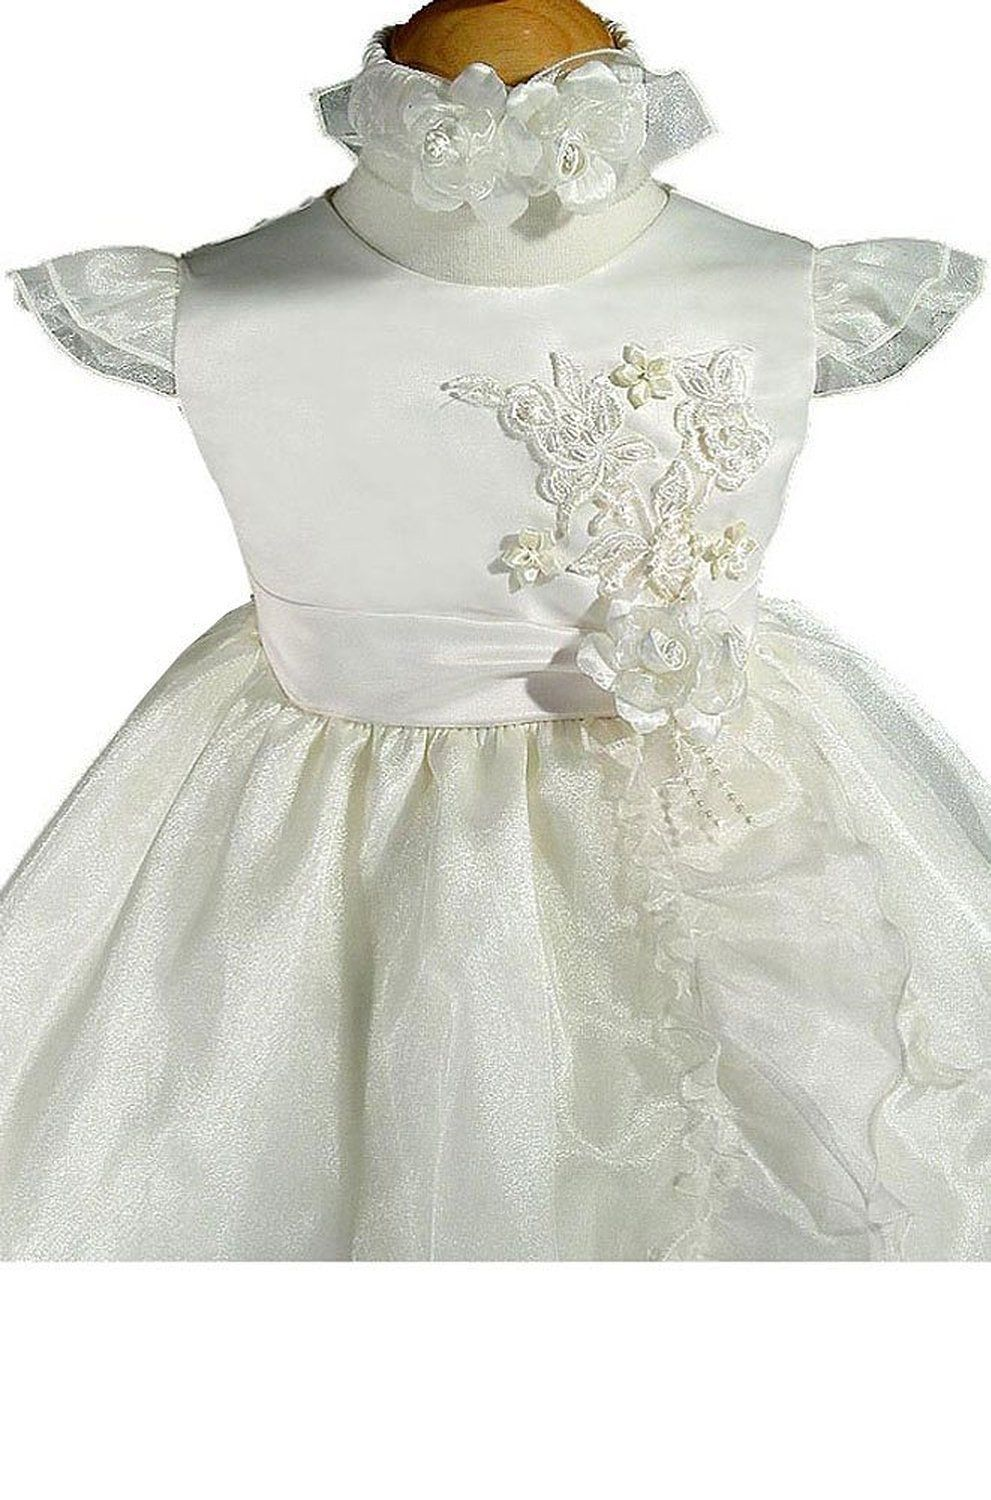 Girls wedding dress  KID Collection Ivory Infant Flower Girl Wedding Dress Size Xl